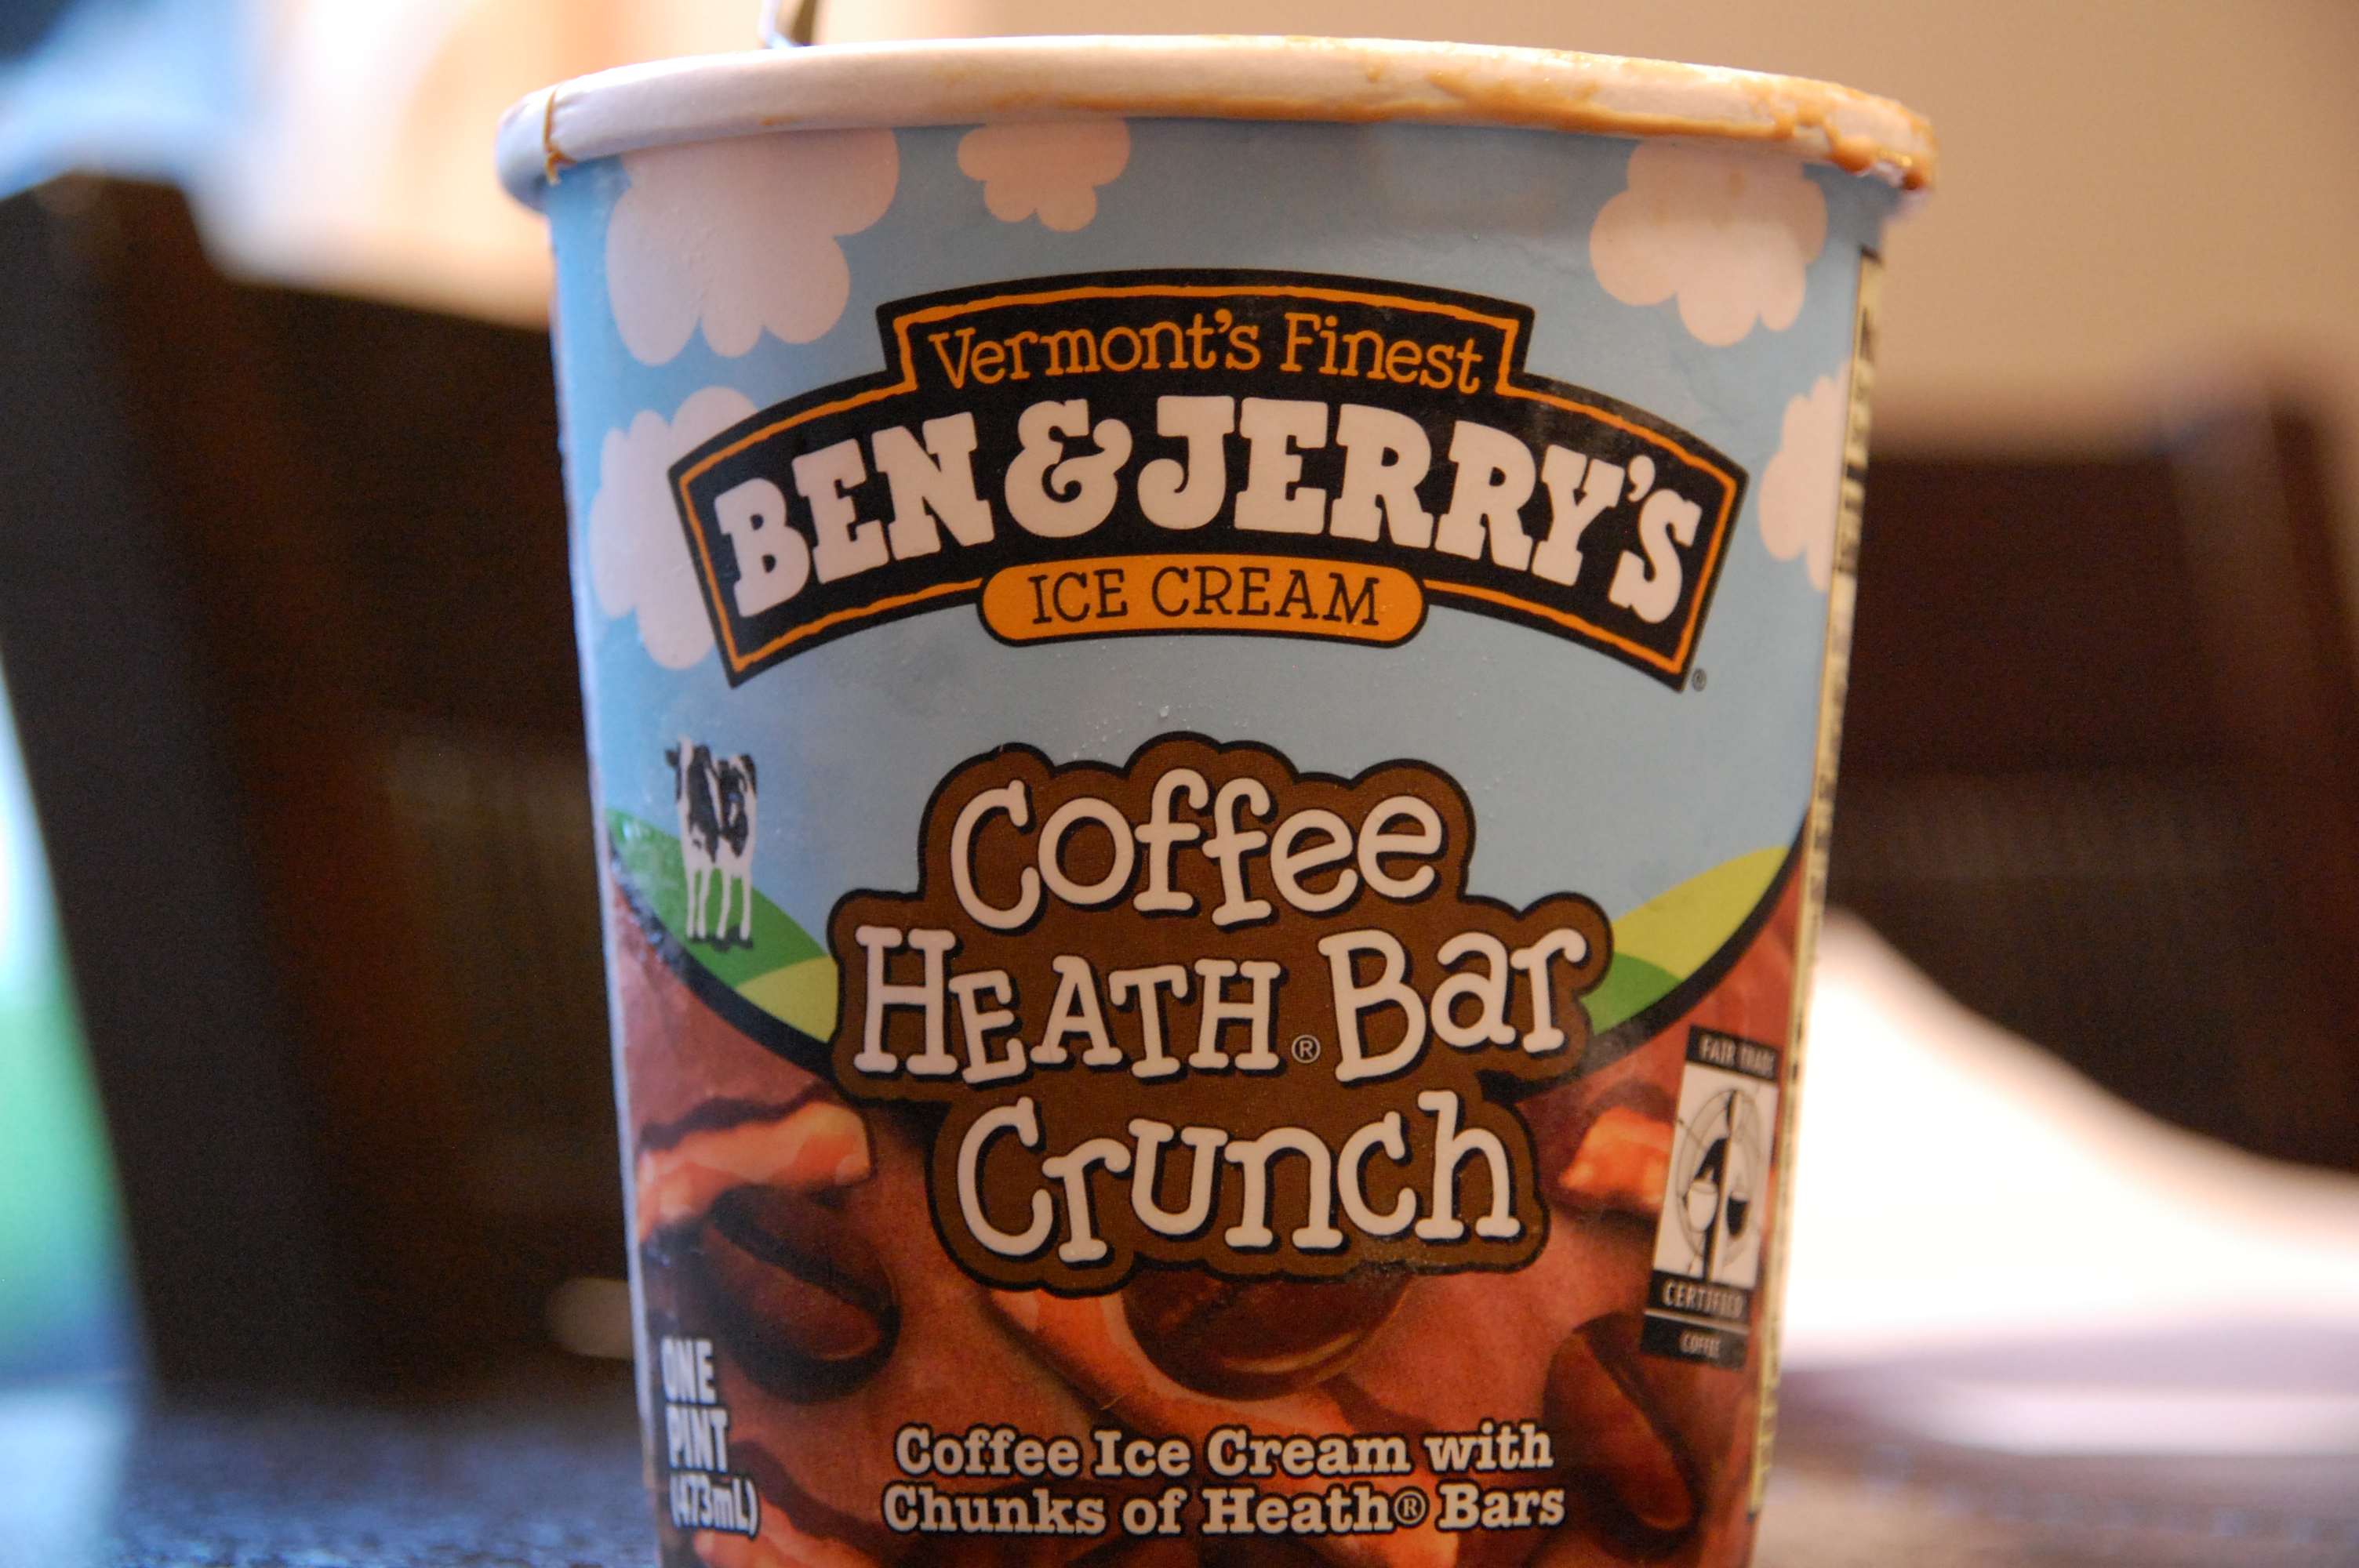 They spread out the Heath bar chunks just far enough so that you have ...